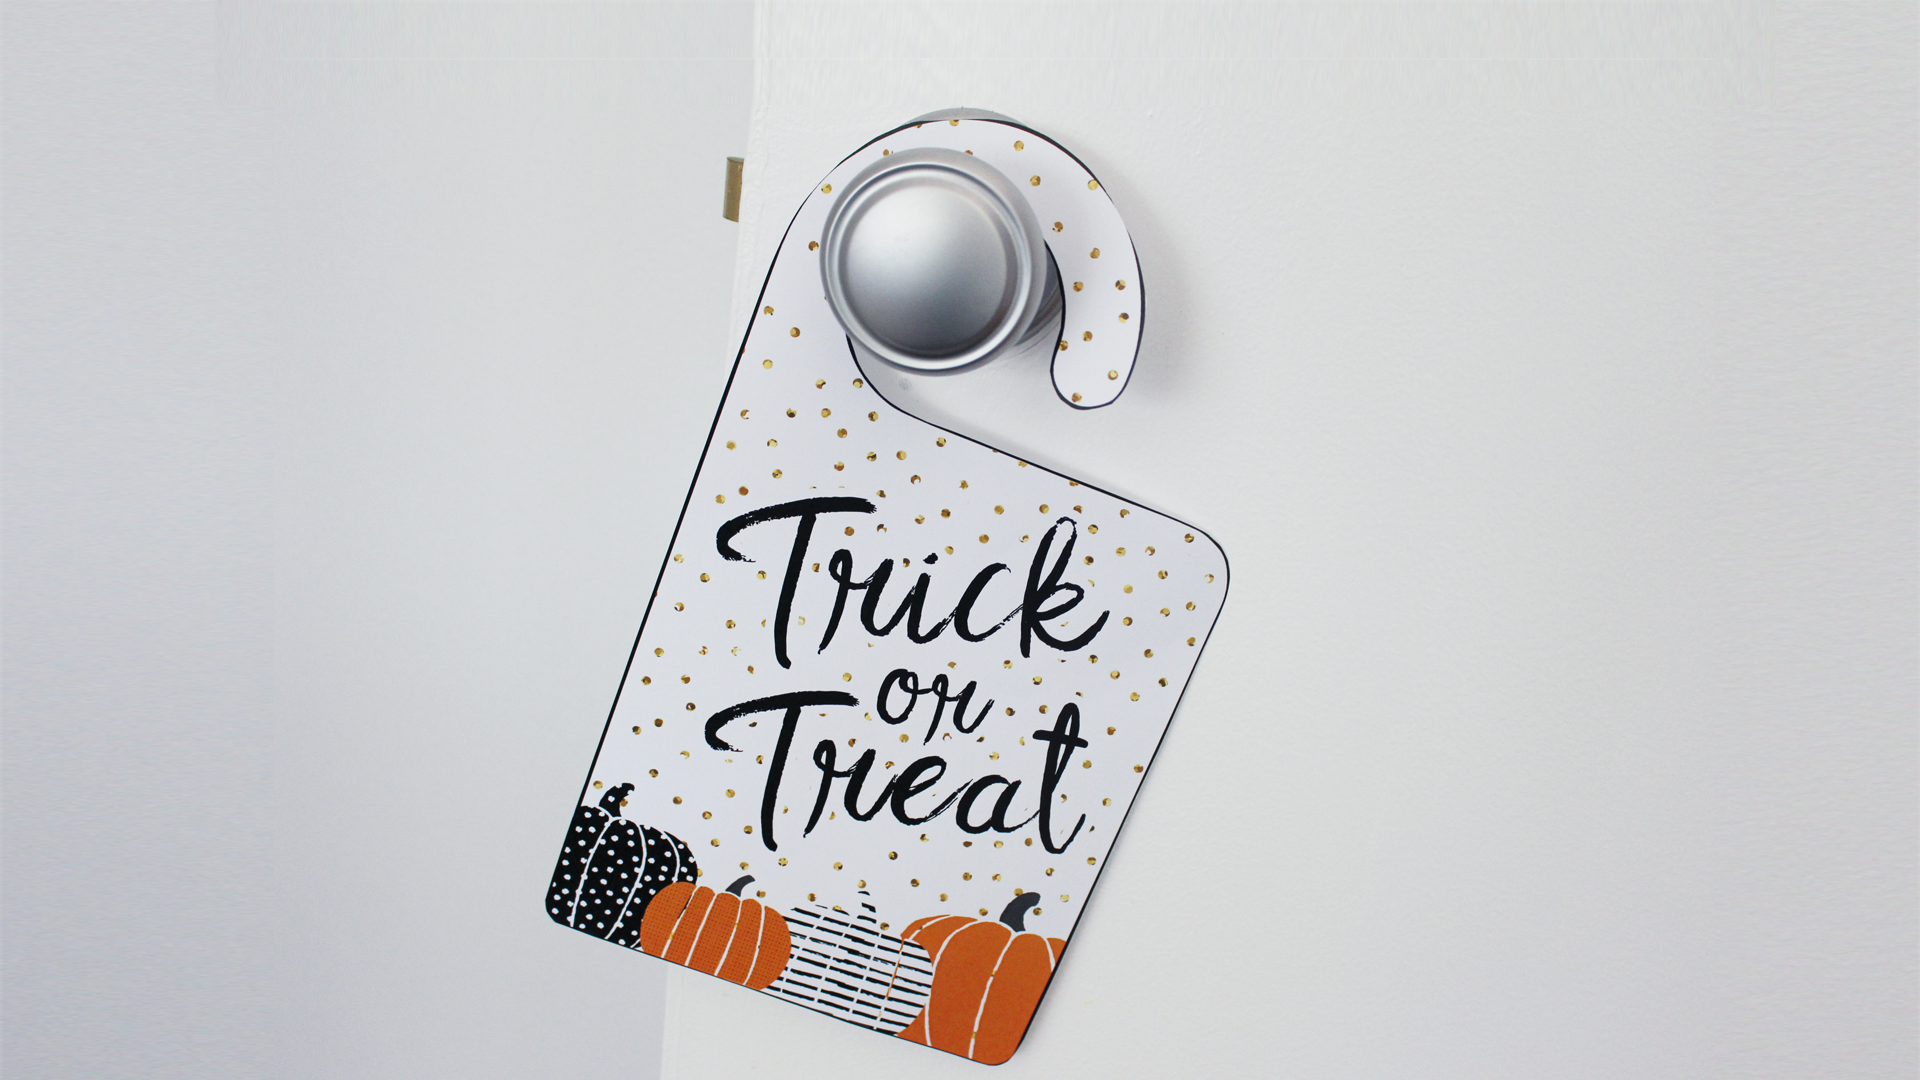 photograph regarding Halloween Signs Printable named Free of charge Printable Halloween Trick-or-Take care of Doorway Indications